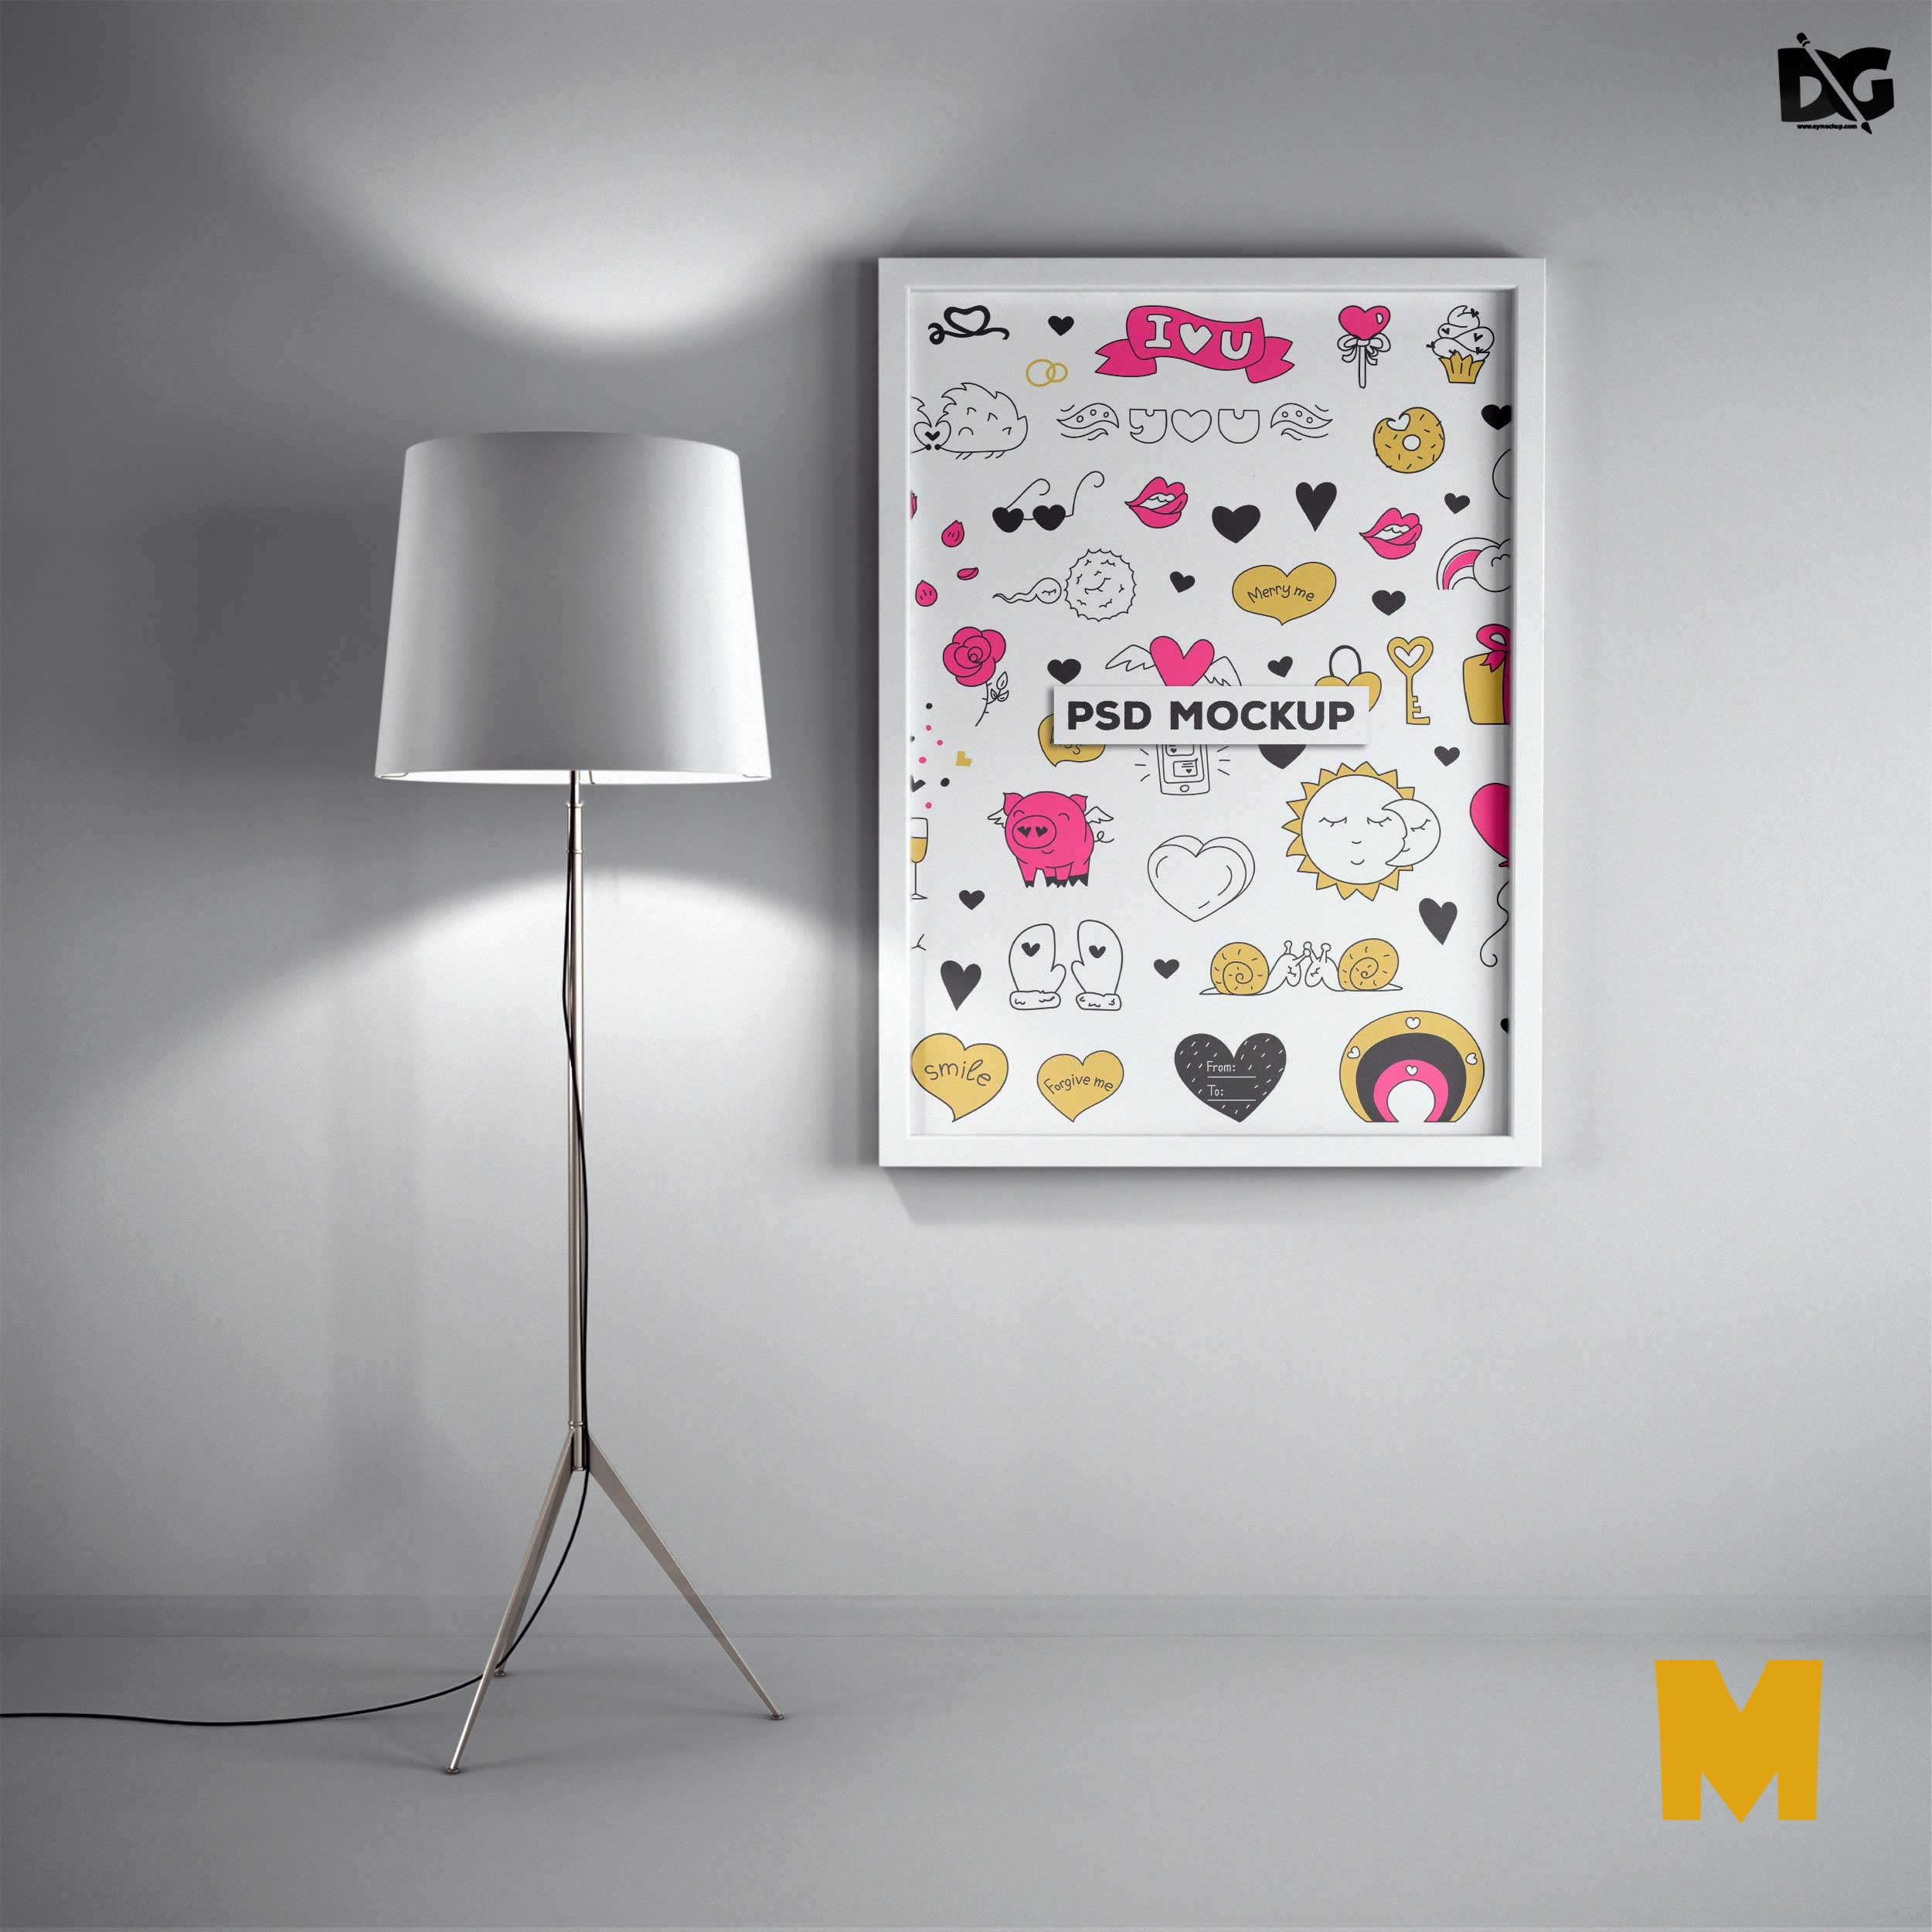 Free White Wall Poster Colorful Design PSD Mockups